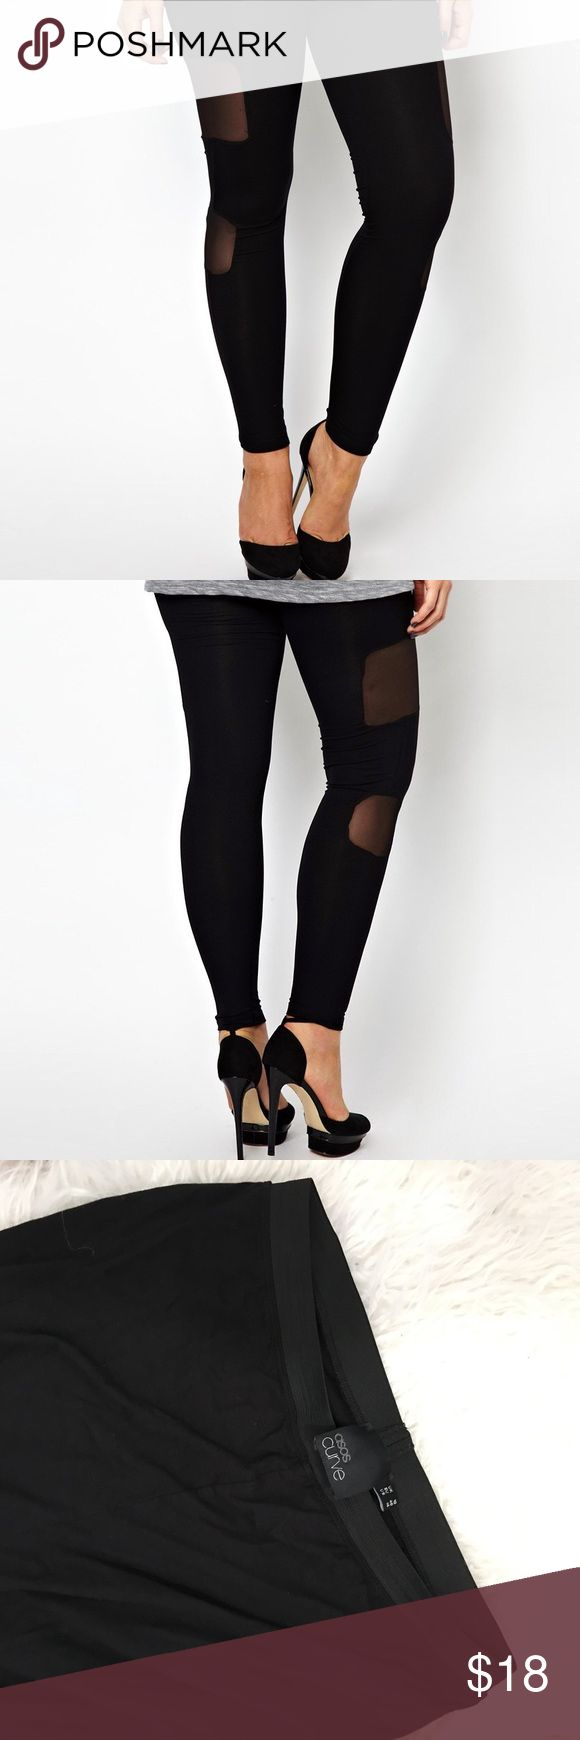 ASOS Curve Legging with Mesh 2 mesh panels on each leg! Comfy legging in gently loved used condition! Stretchy / 95%viscose 5%elastane ASOS Curve Pants Leggings